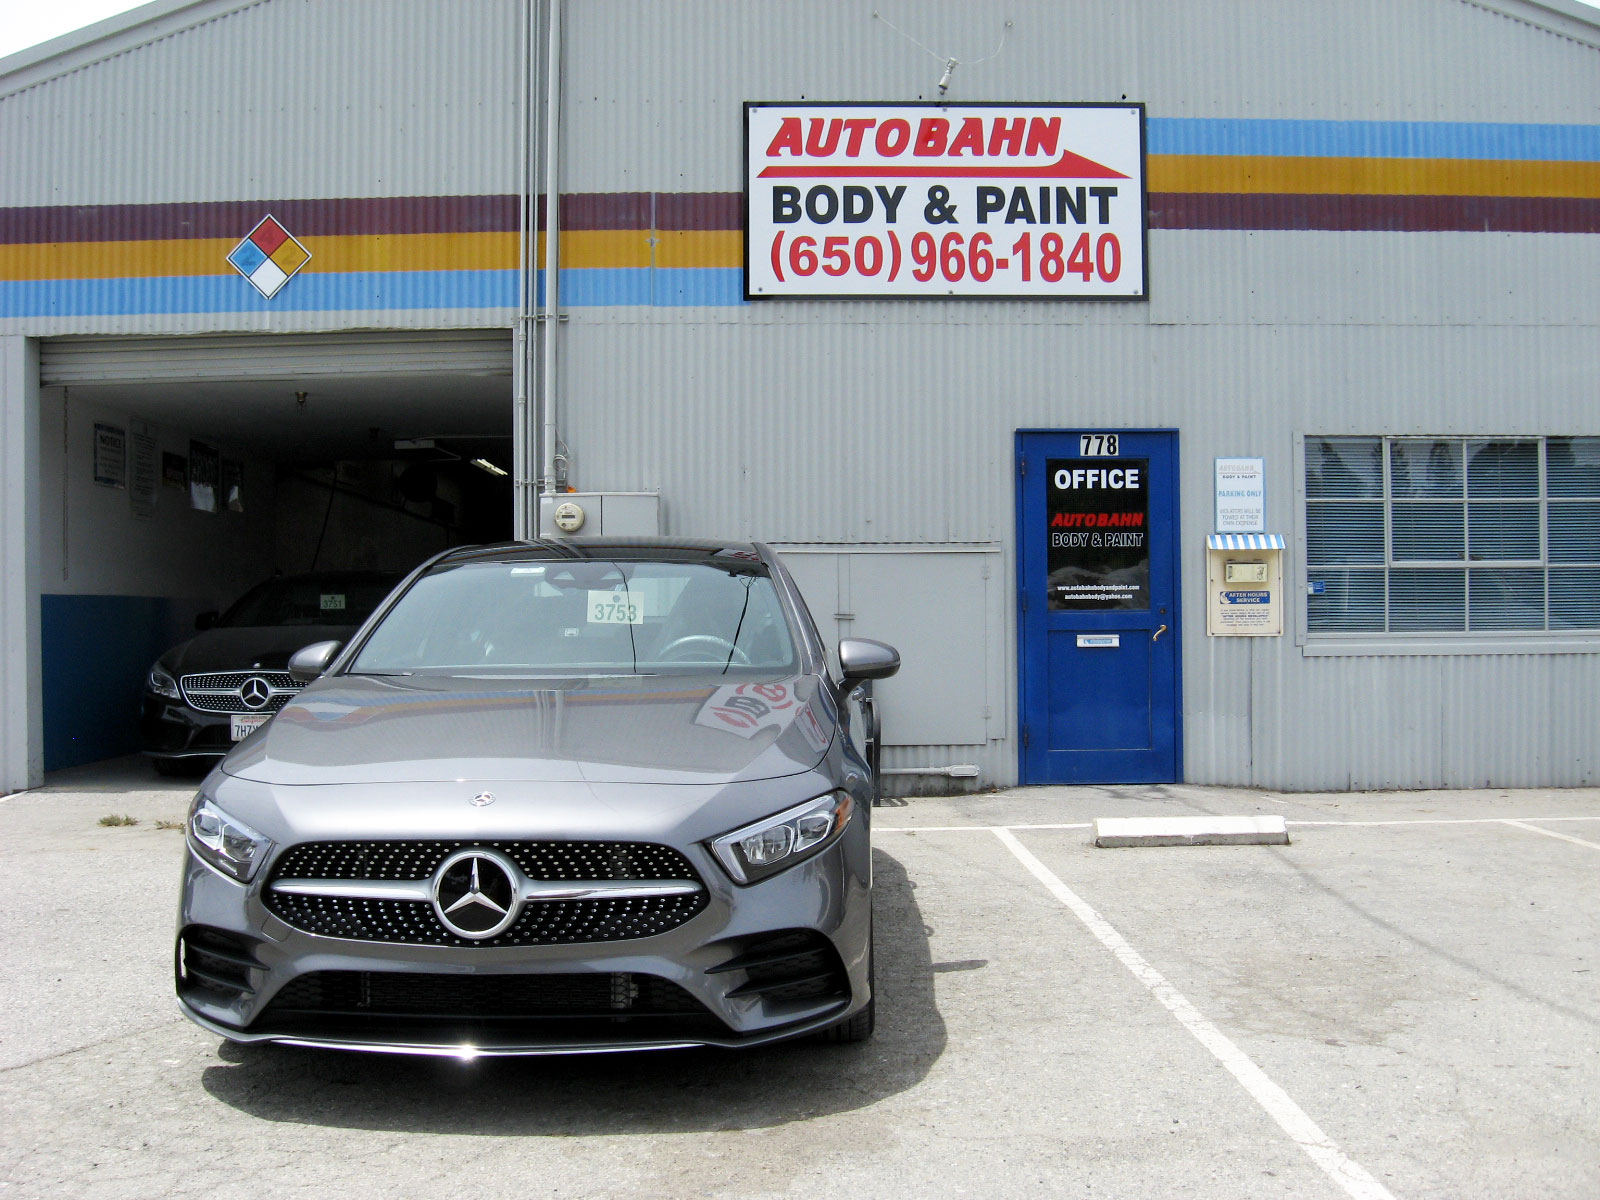 Autobahn: German Specialty Shop